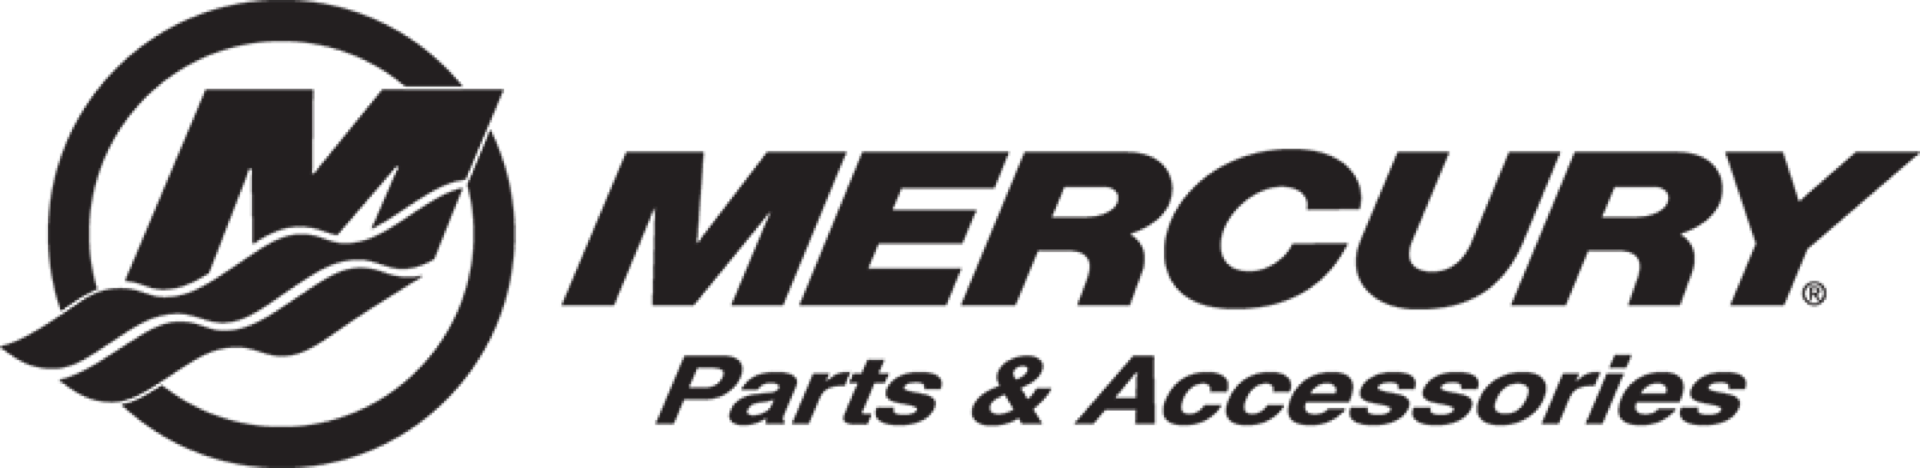 Mercury Parts & Accessories